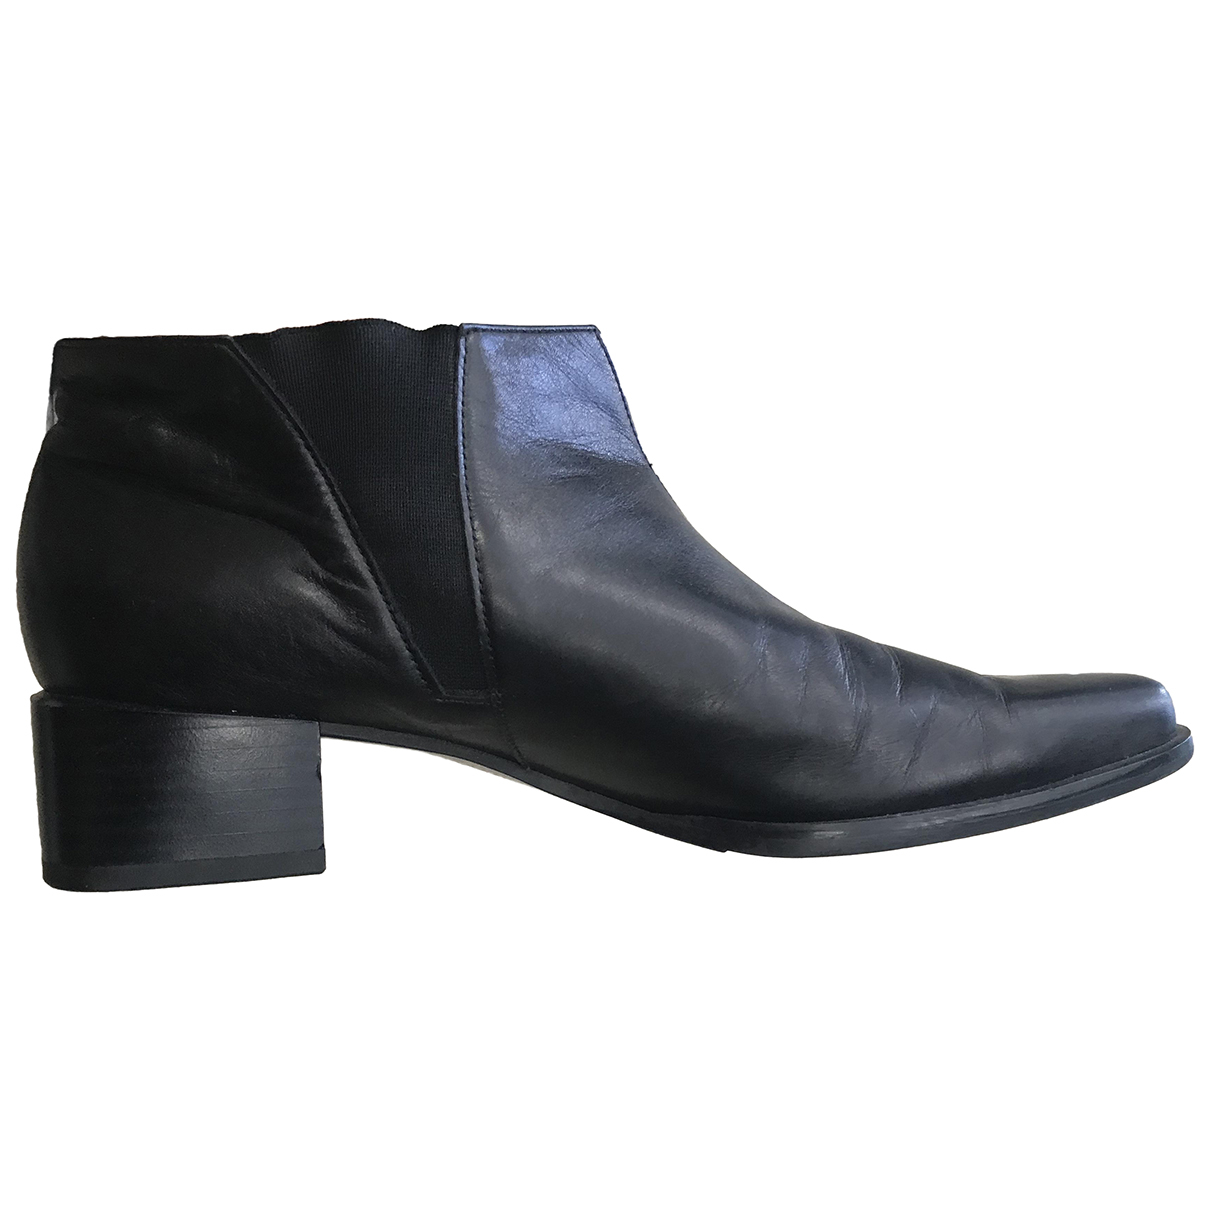 Peter Kaiser N Black Leather Ankle boots for Women 38 EU